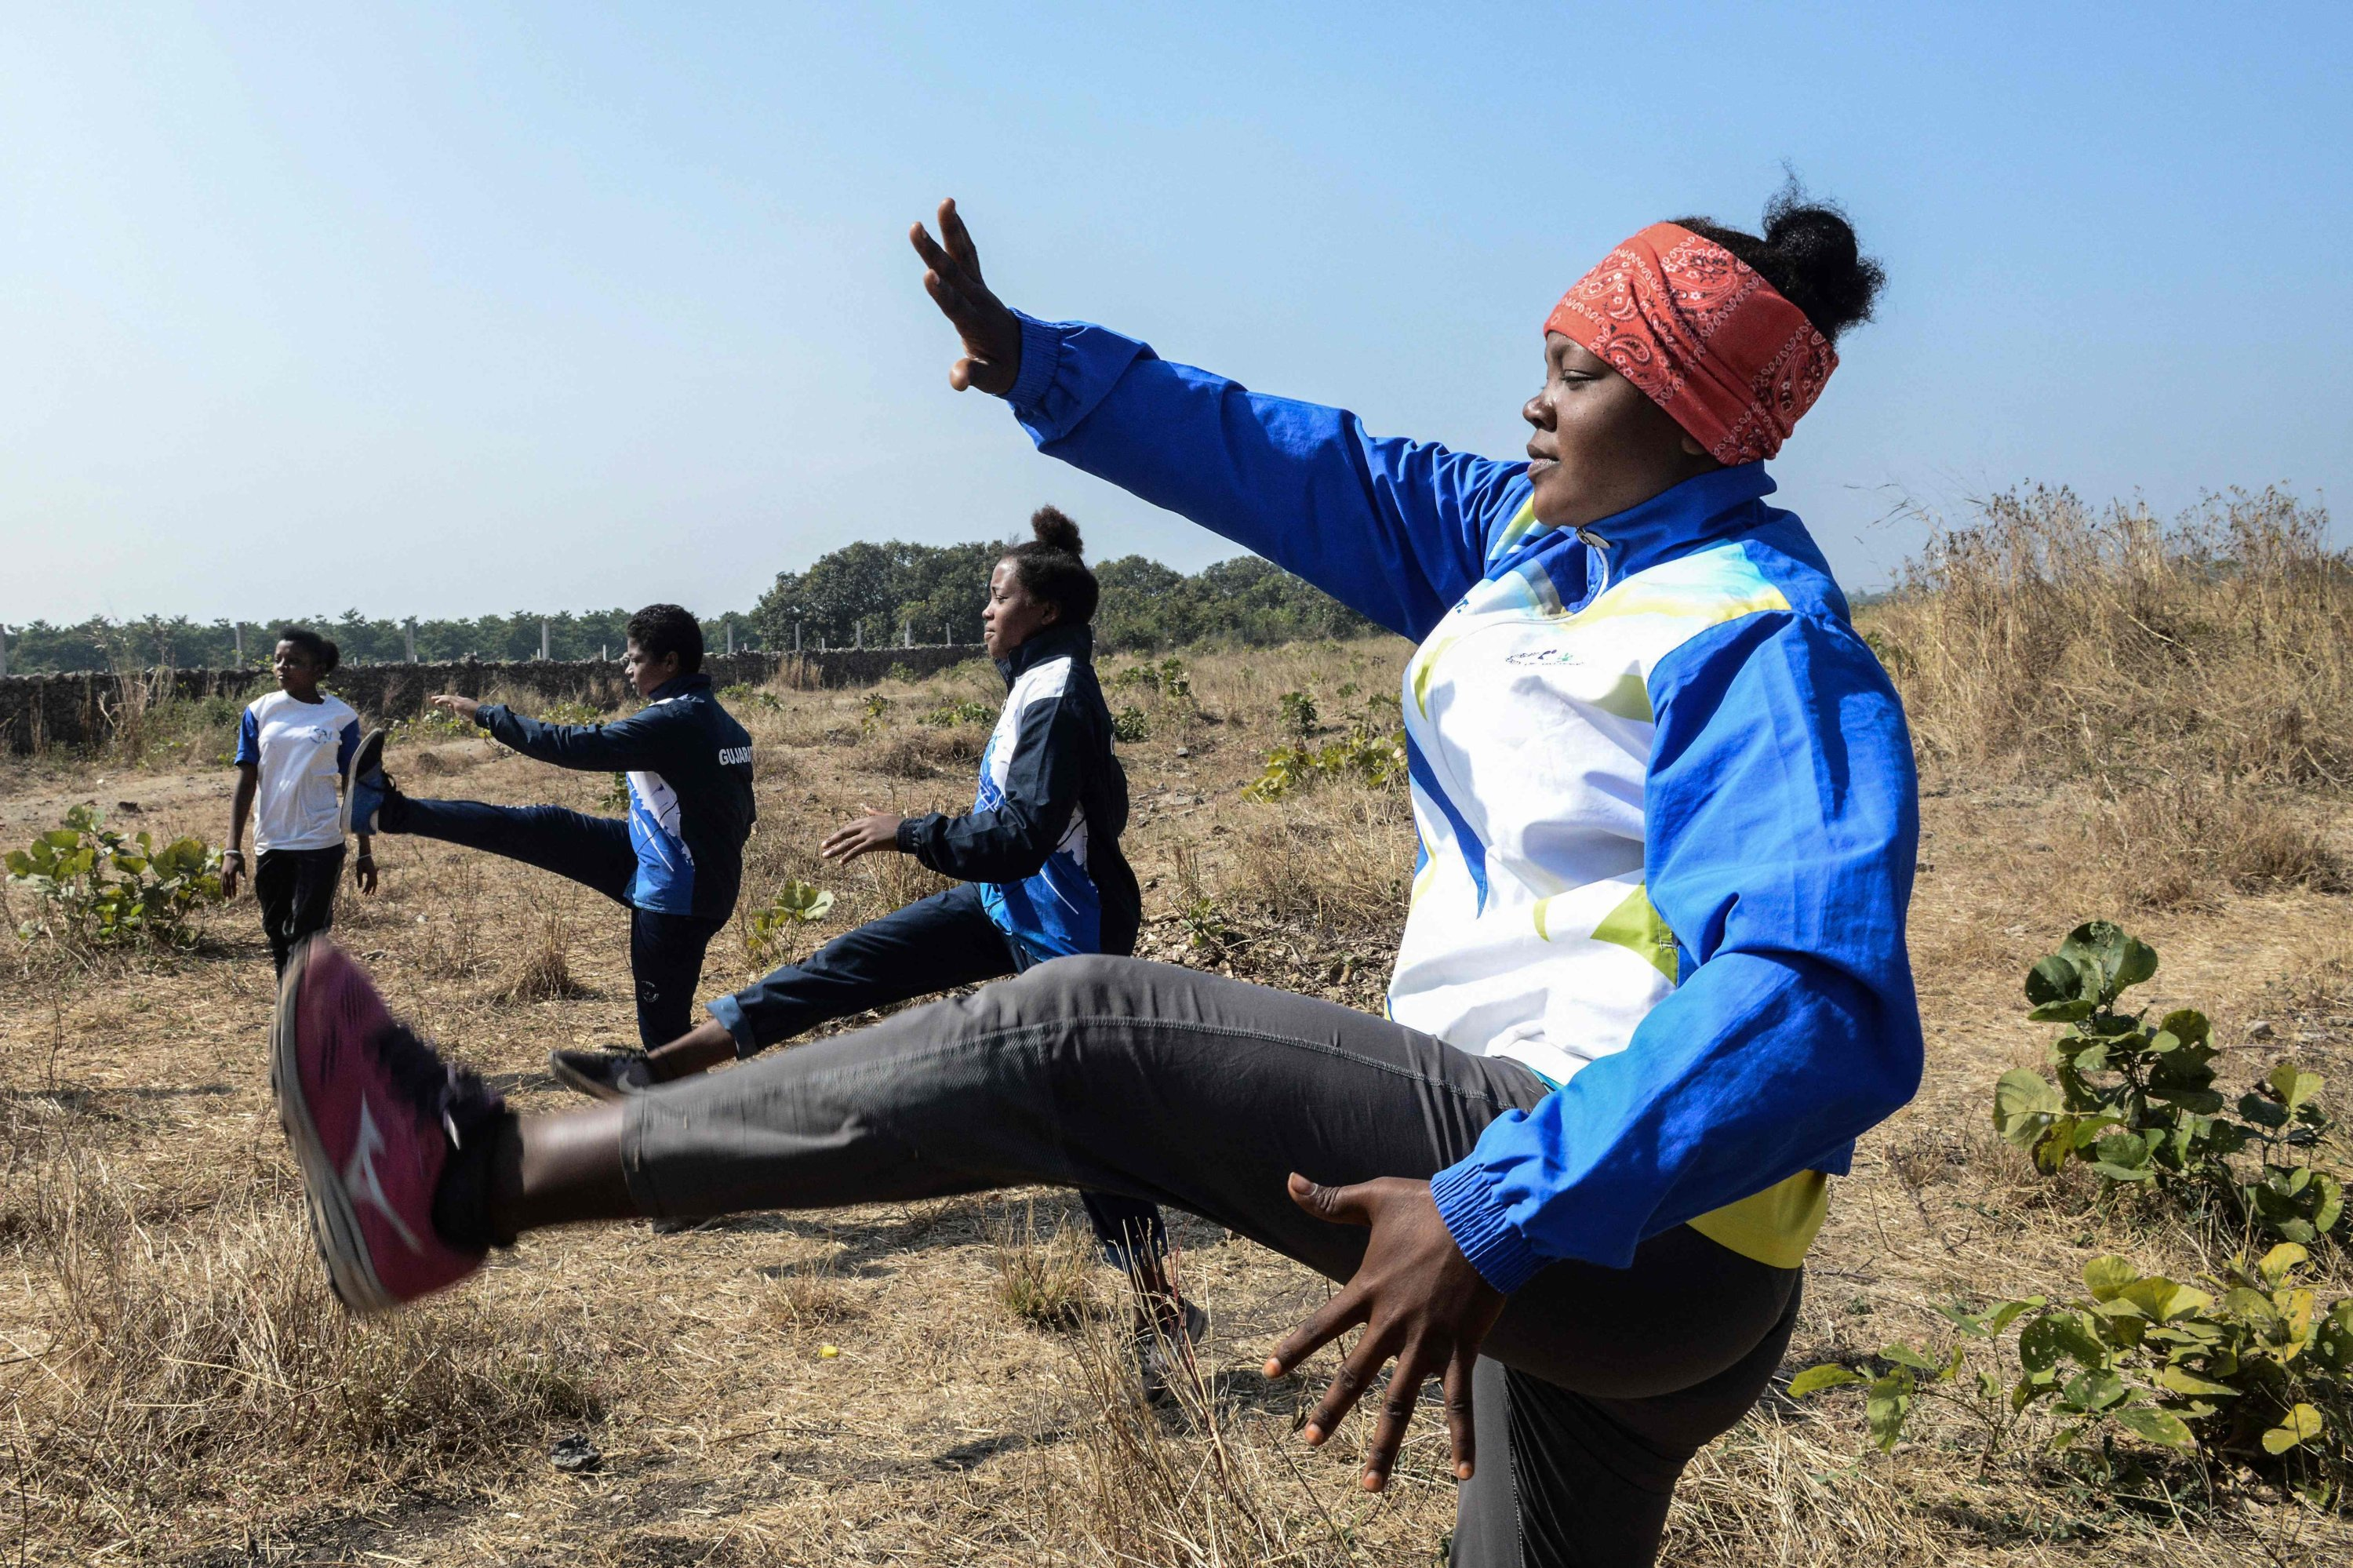 Shenaz Lobi (R), along with other members of the Siddi community, taking part in an exercise routine during an athletes program at Jambur village, in Junagadh district of Gujarat, India, Jan. 6, 2021.